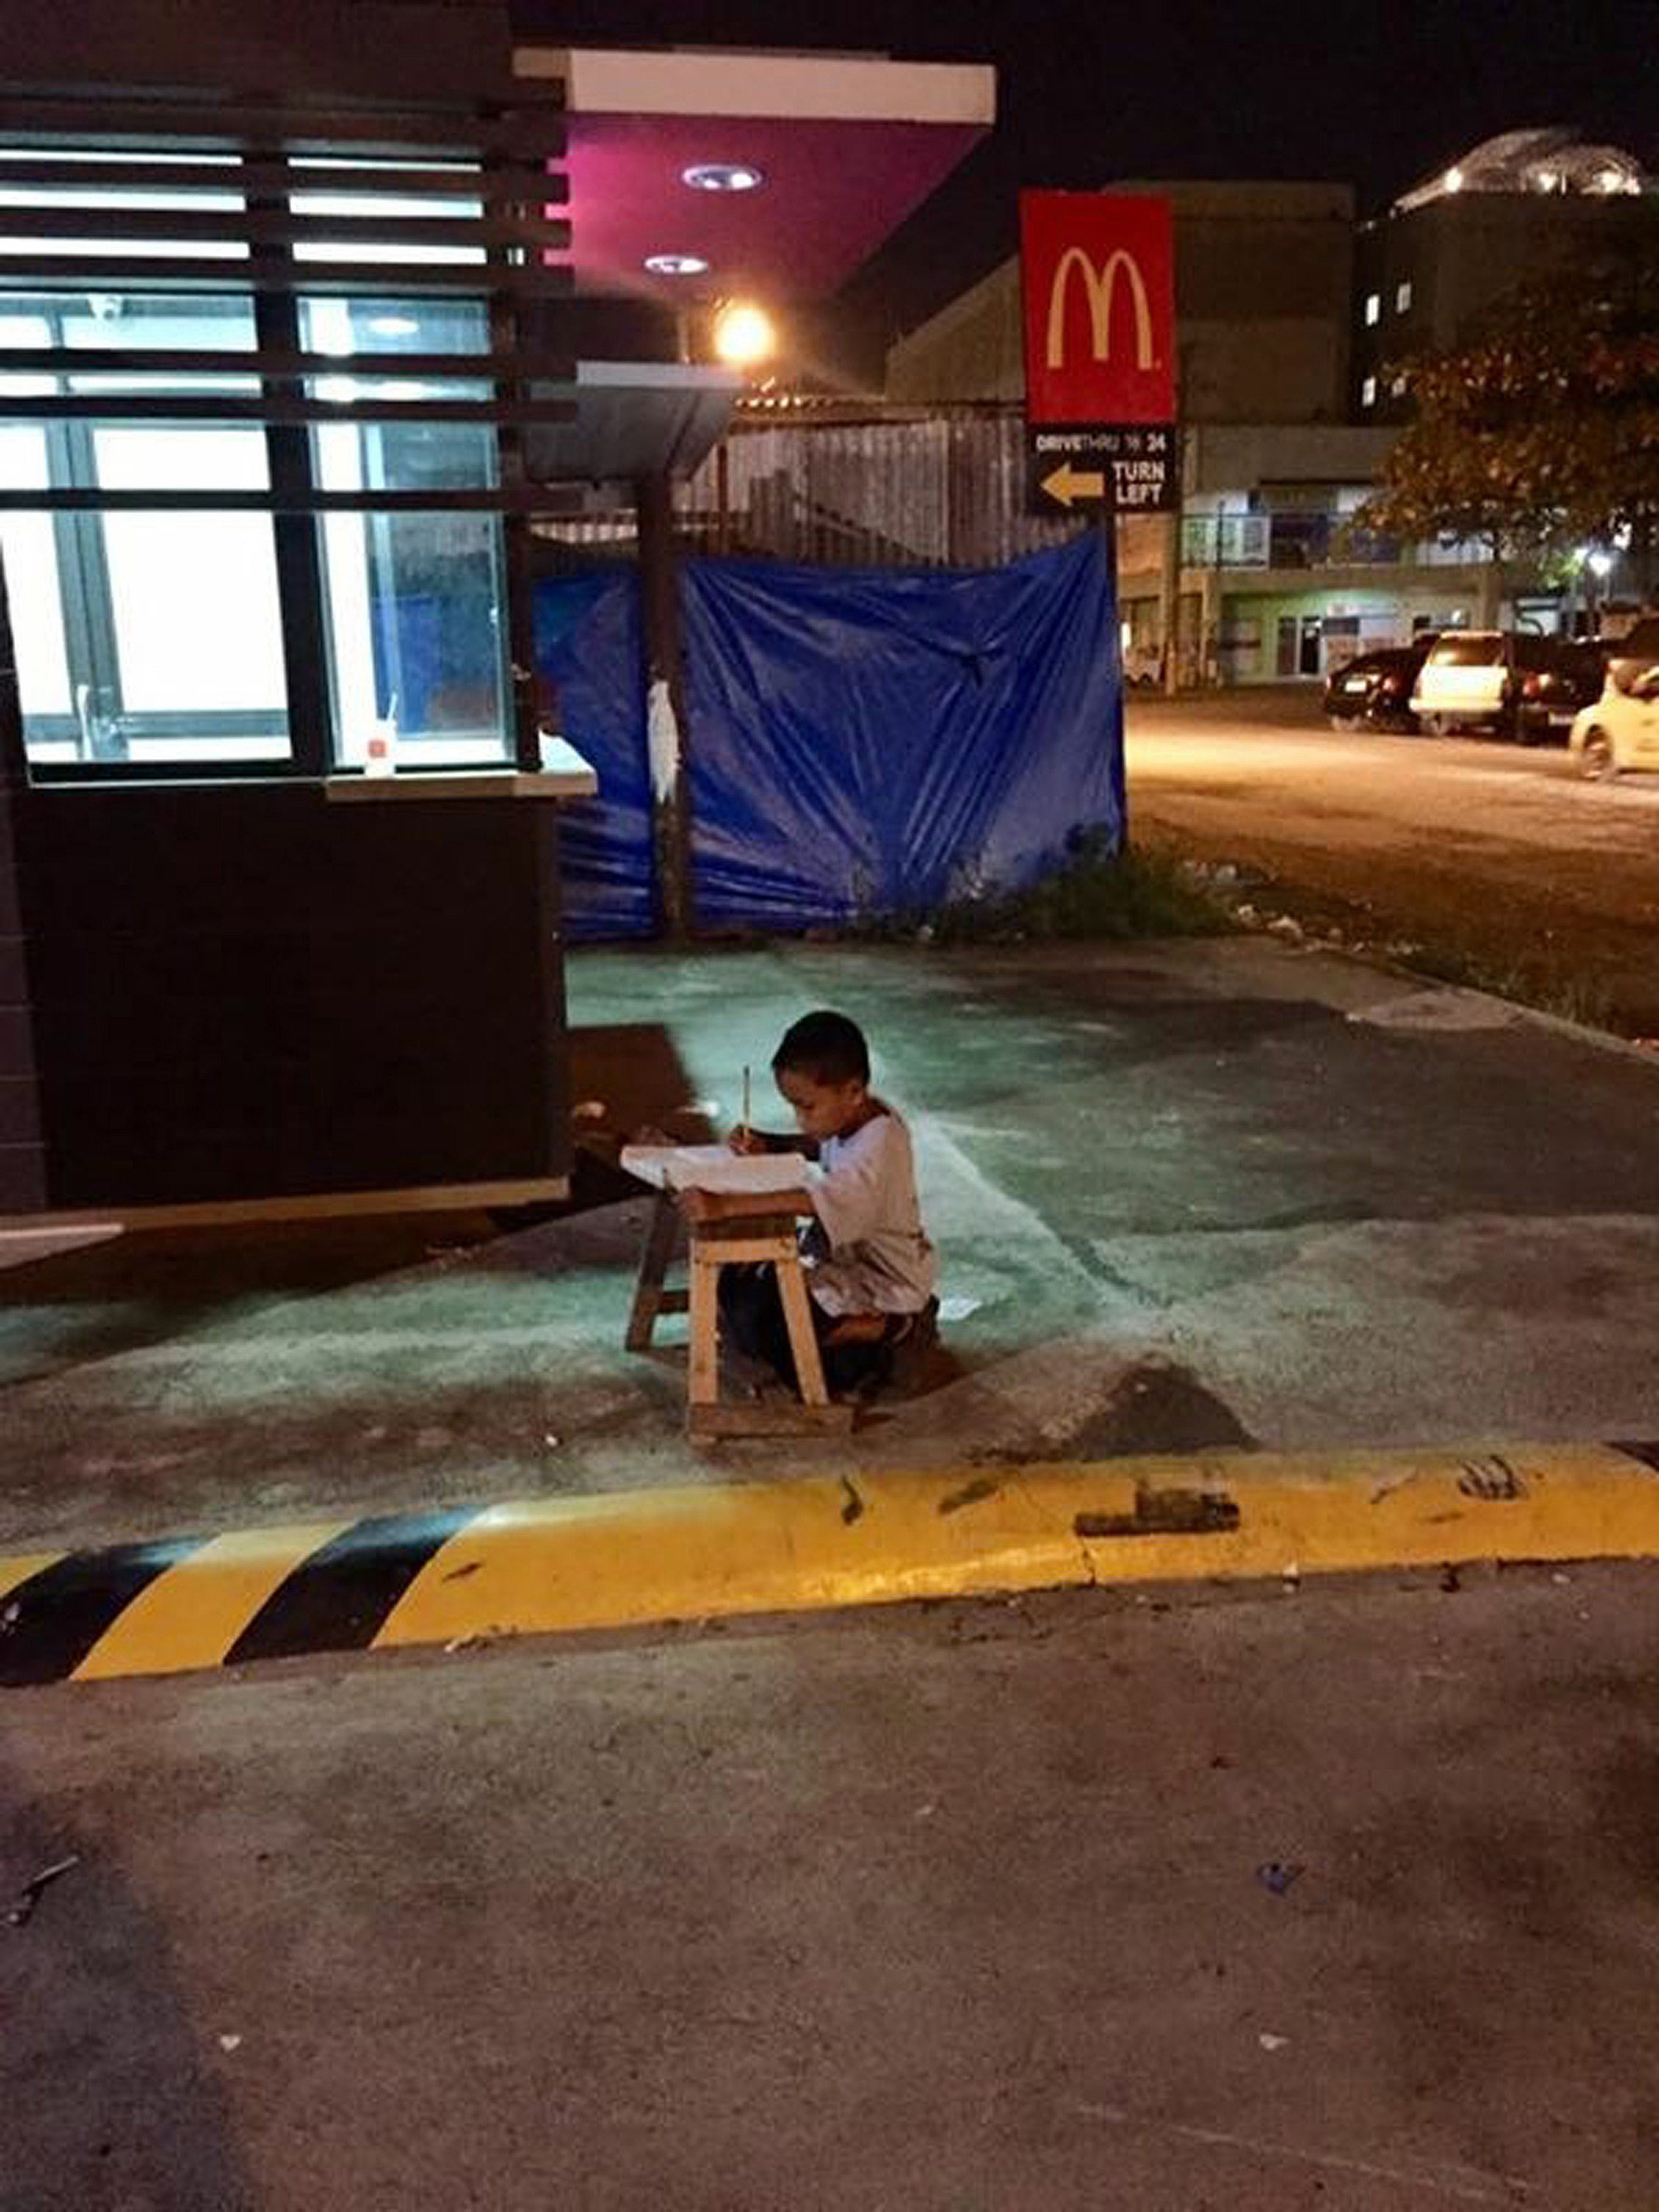 This handout photo taken on June 23, 2015 by student Joyce Torrefranca and released to AFP on July 10, 2015 shows homeless nine-year-old boy Daniel Cabrera doing his homework on a wooden stool placed close to a fastfood restaurant to catch the light from the store in Mandaue in the central Philippines.